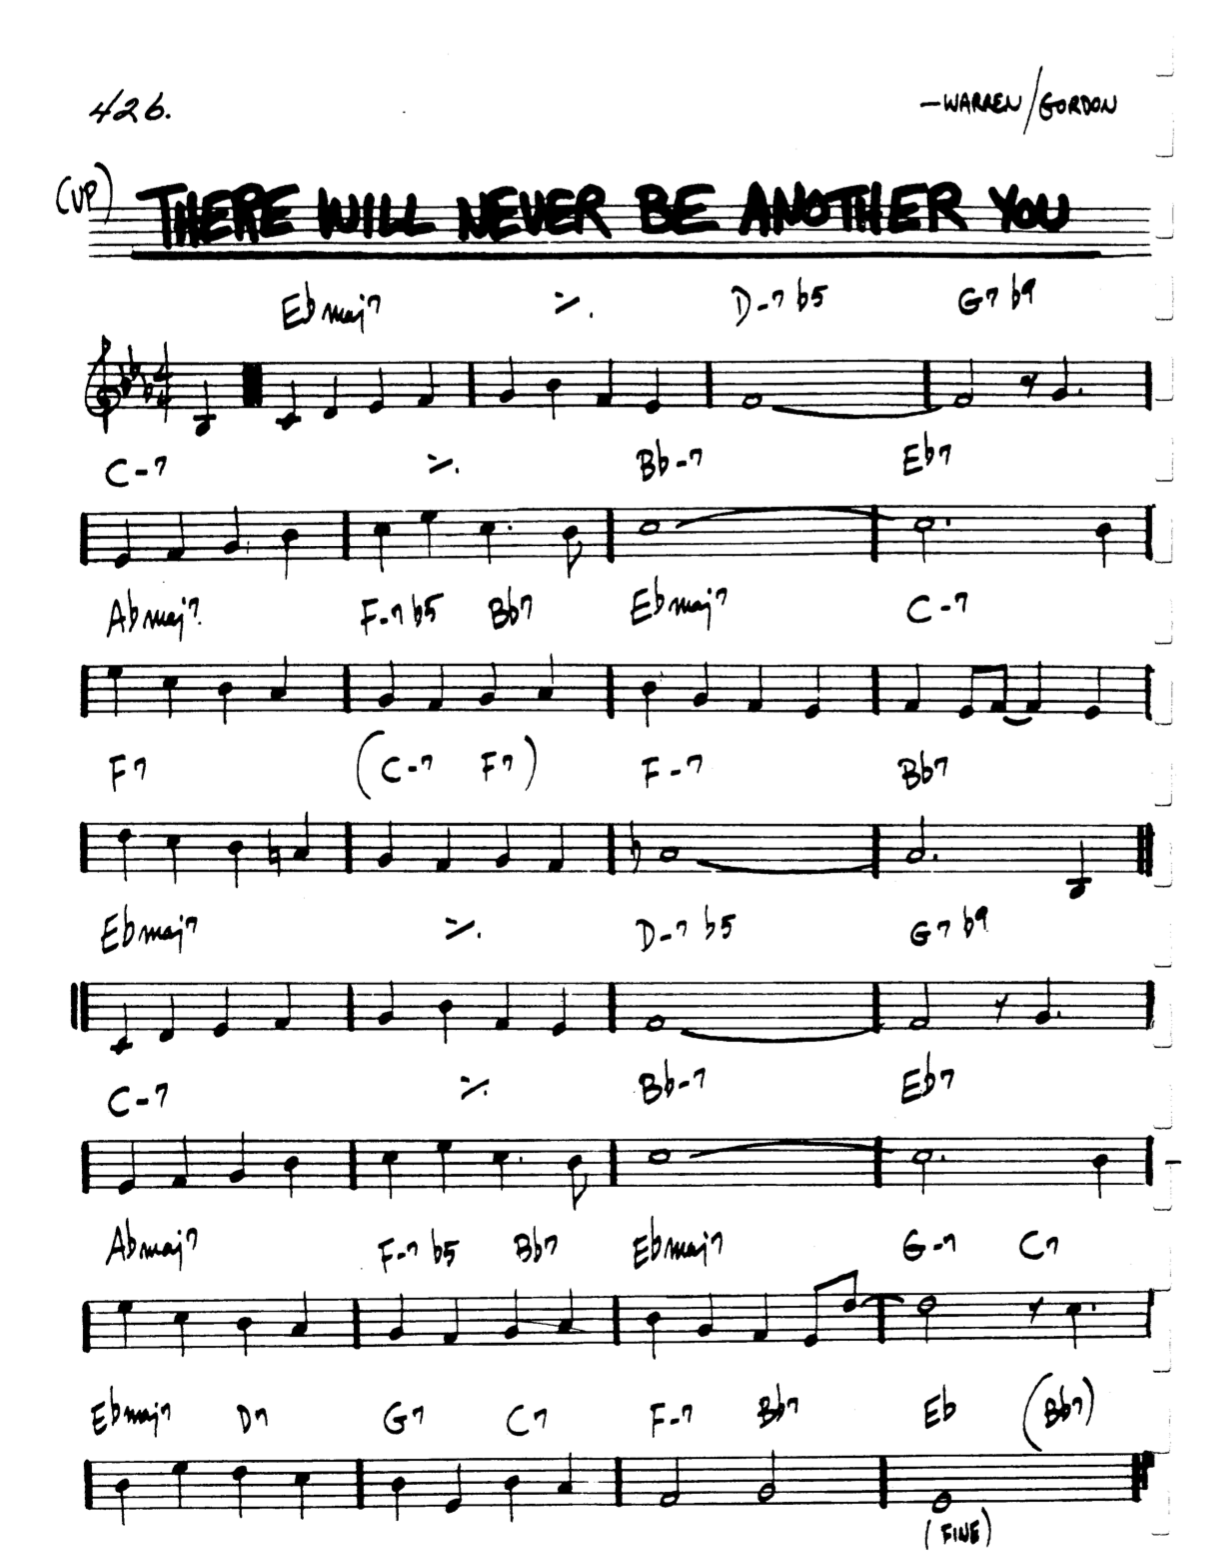 There Will Never Be Another You – Warren/Gordon – minedit